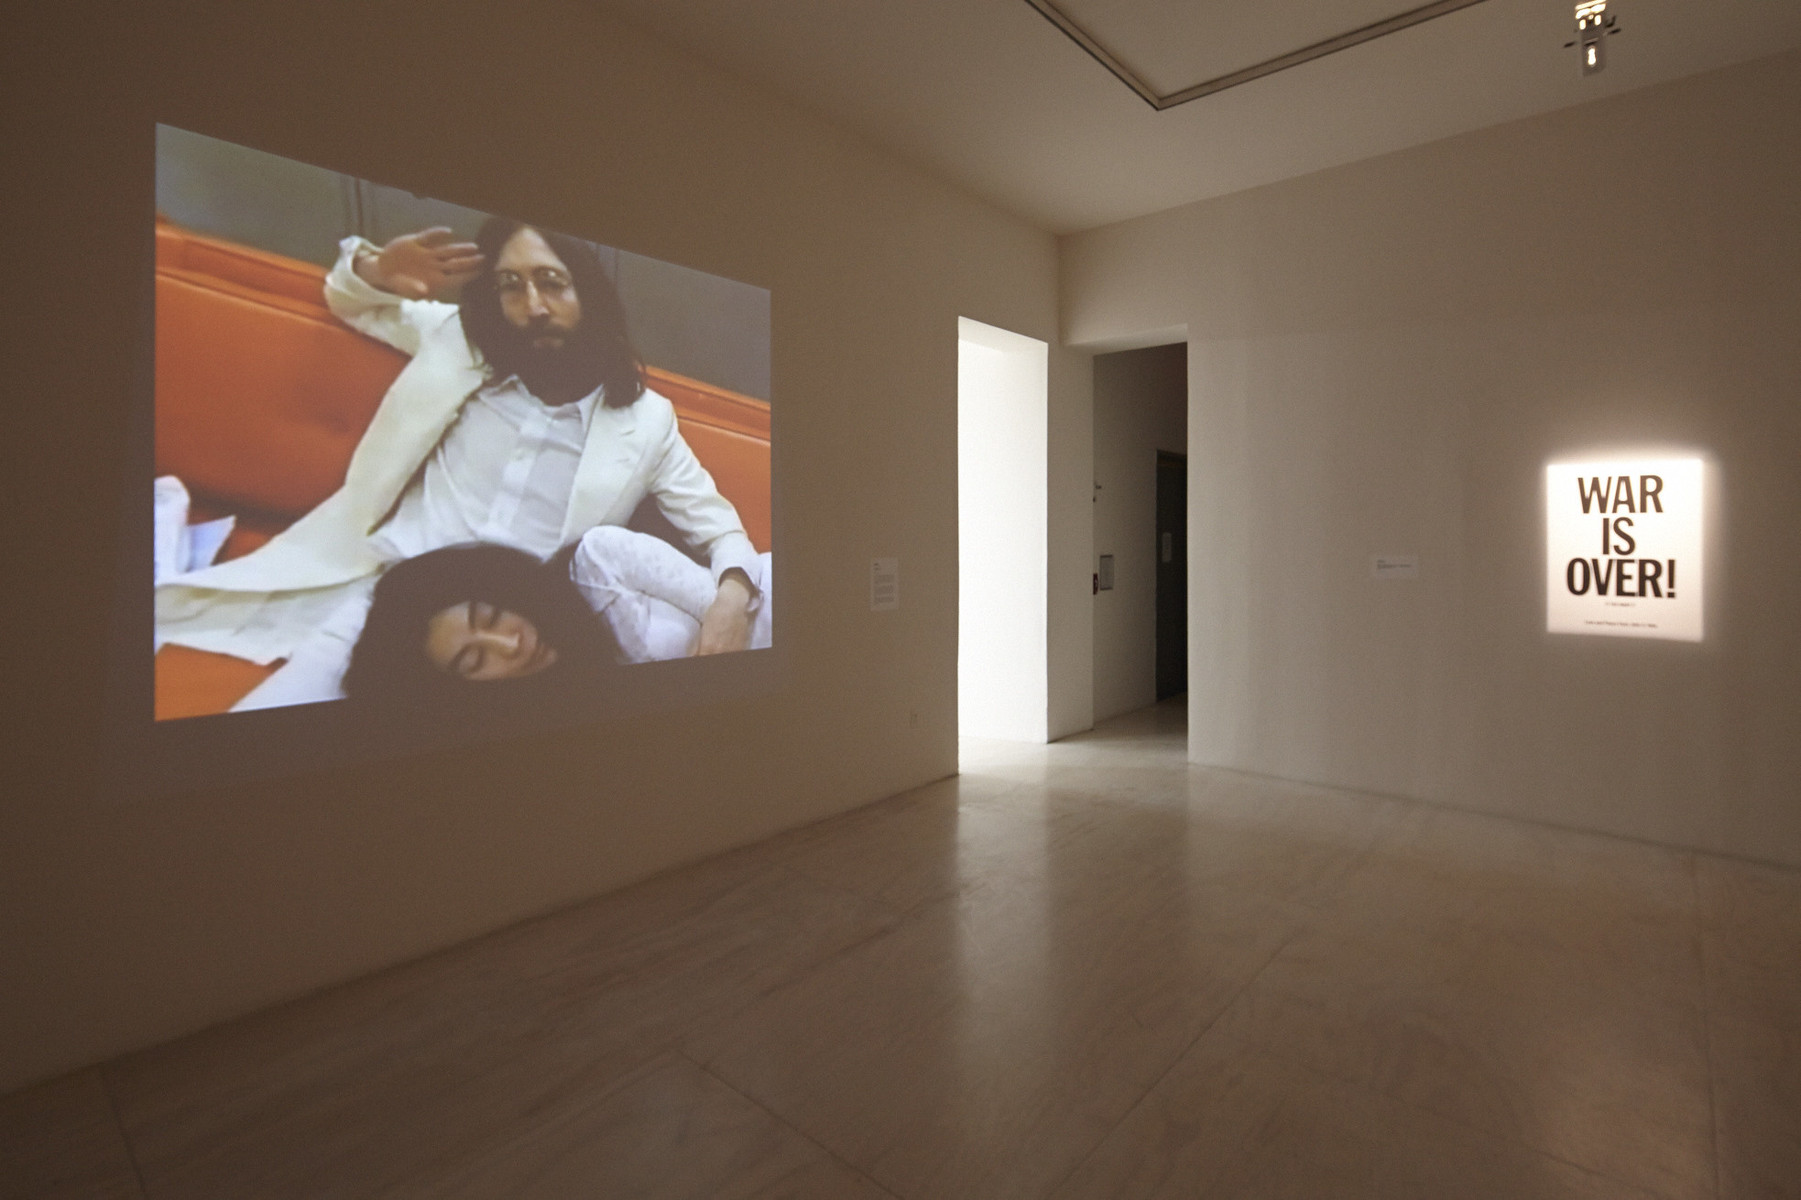 Installation view of Zero Tolerance at MoMA PS1, October 26, 2014–April 13, 2015. Photo: Matthew Septimus